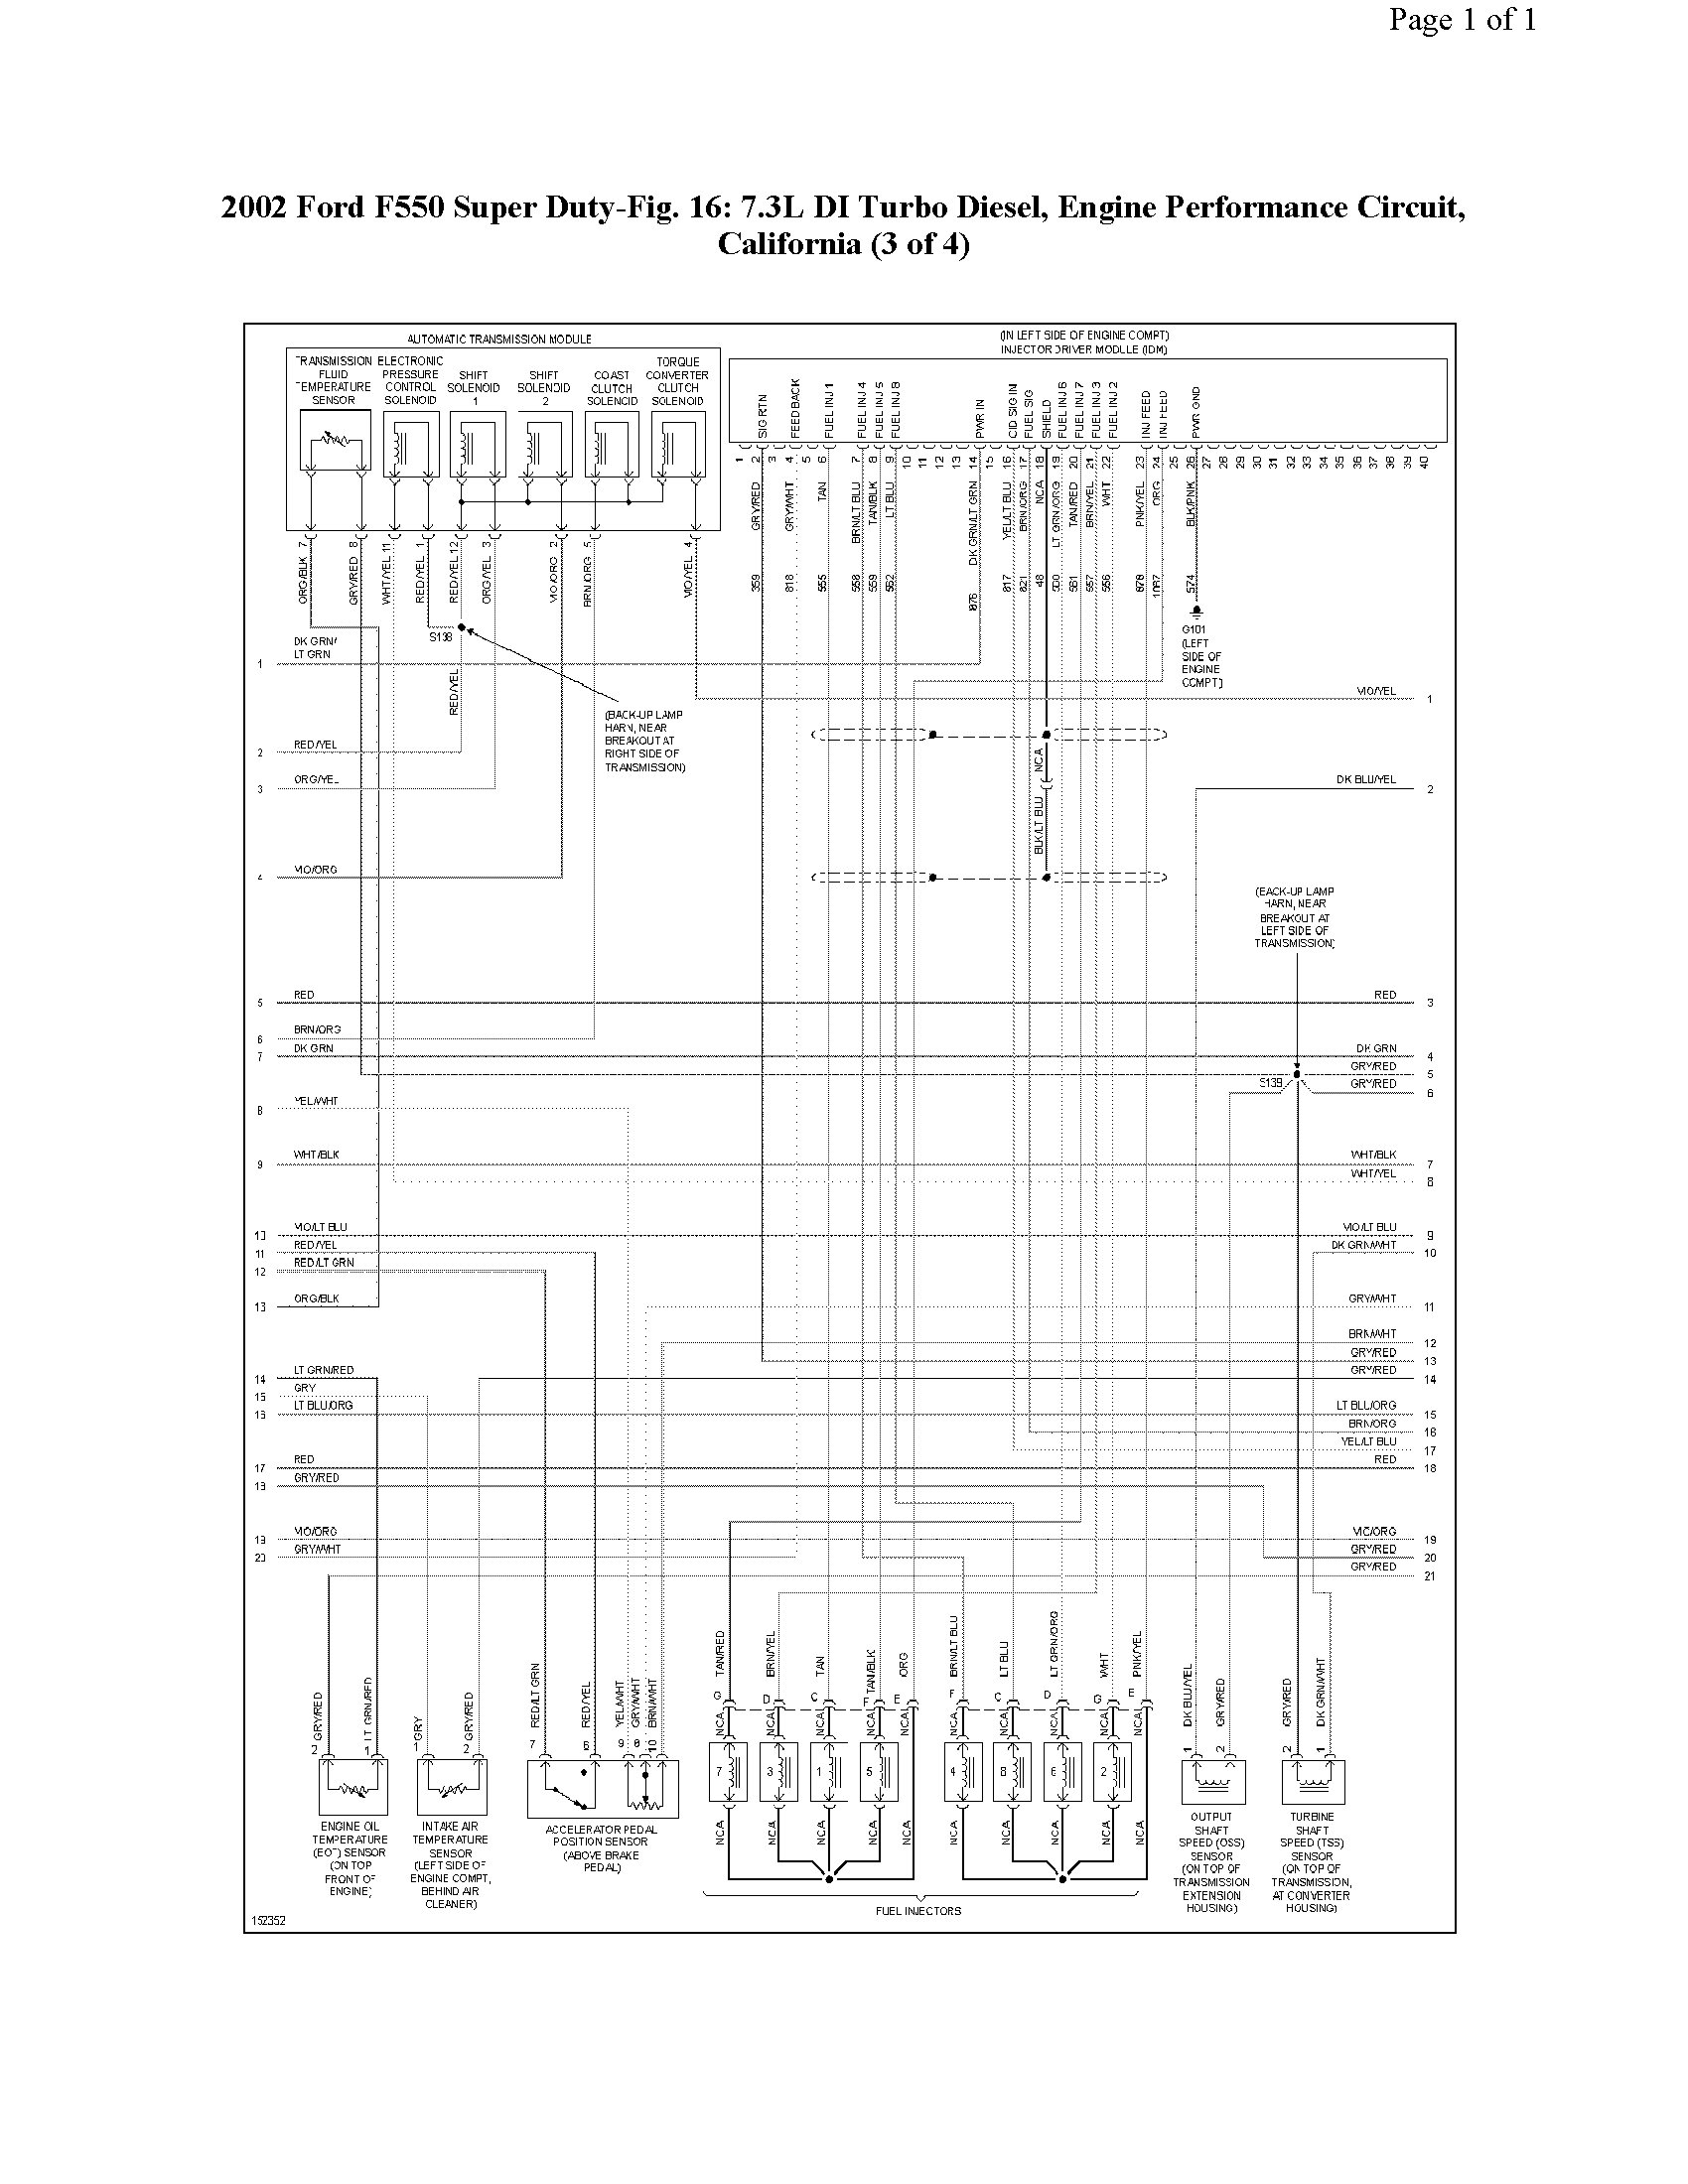 2002 Super Duty 7 3 Wiring Diagram Great Design Of 2000 F250 Sel Fuse Box 02 Ford Auto Powerstroke Injector Aih Relay 73